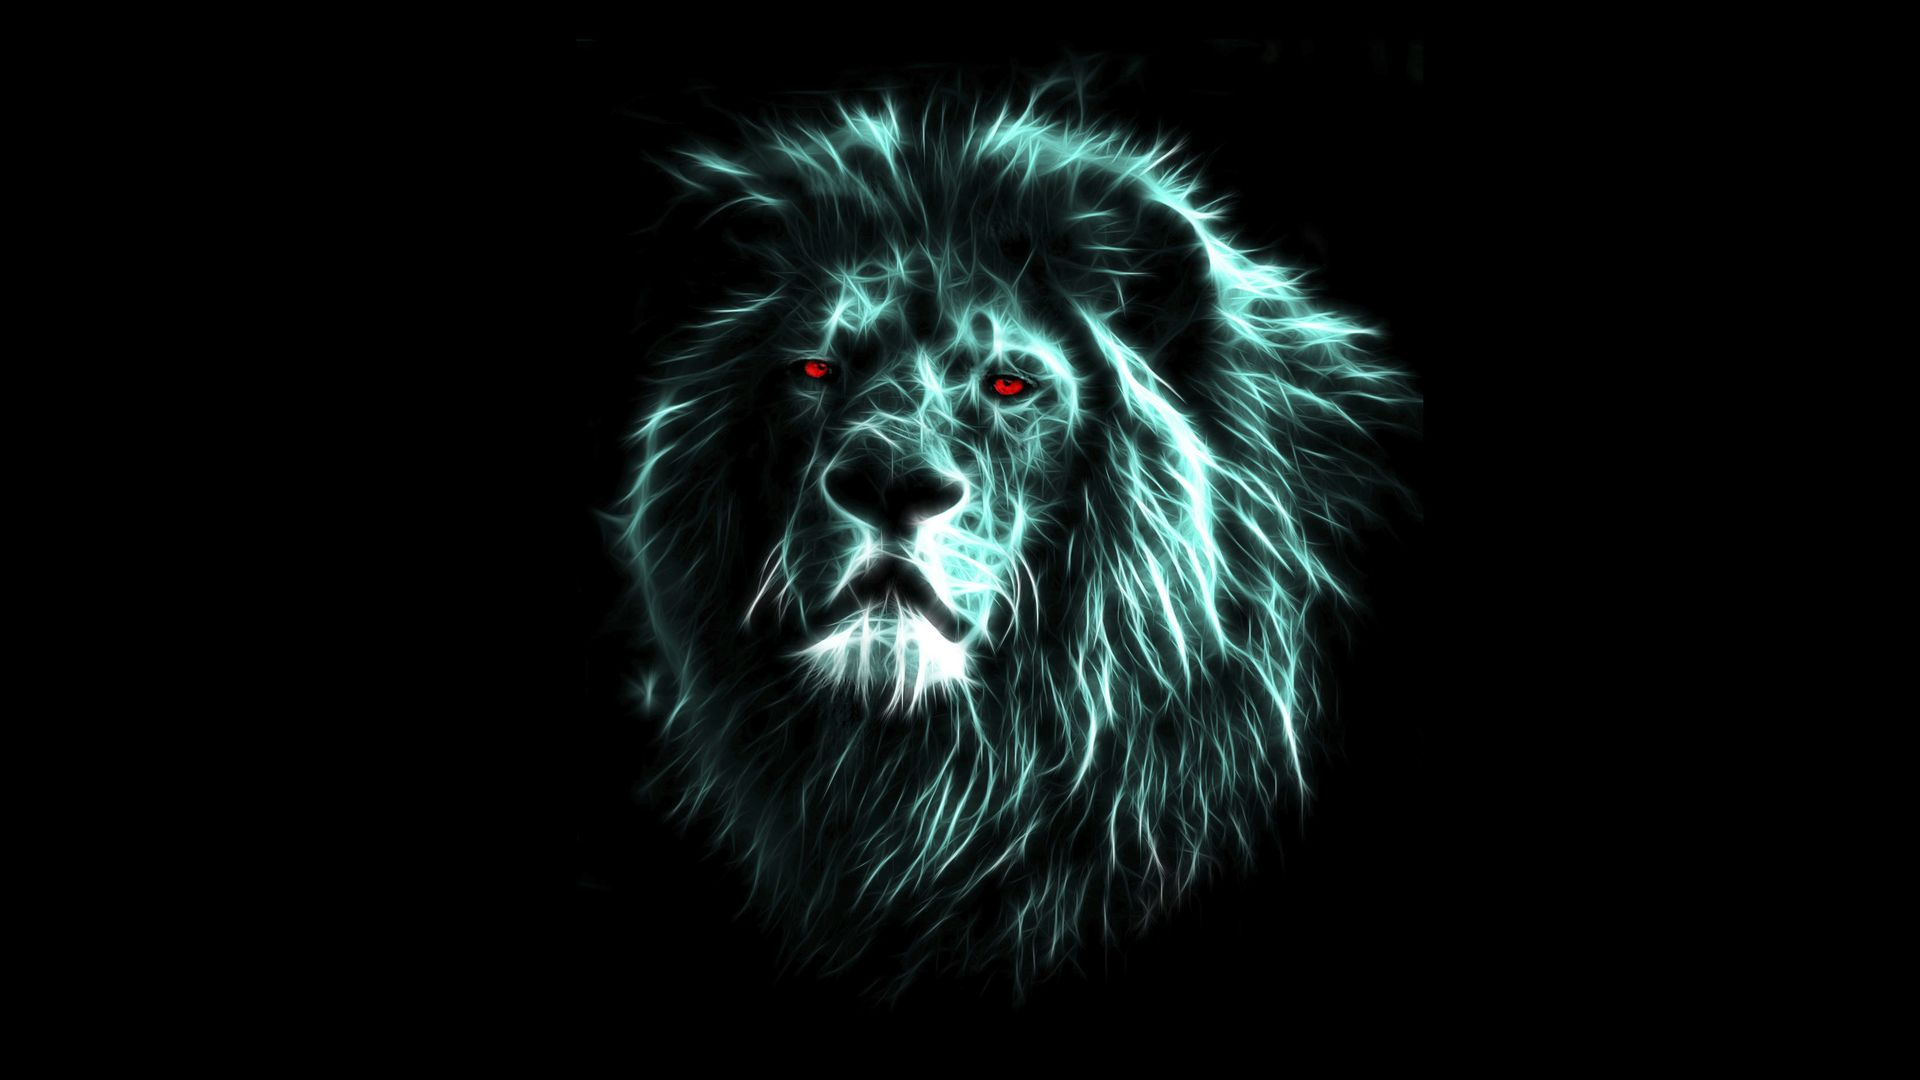 Lion Wallpapers Full Hd On Wallpaper 1080p Hd Lion Wallpaper